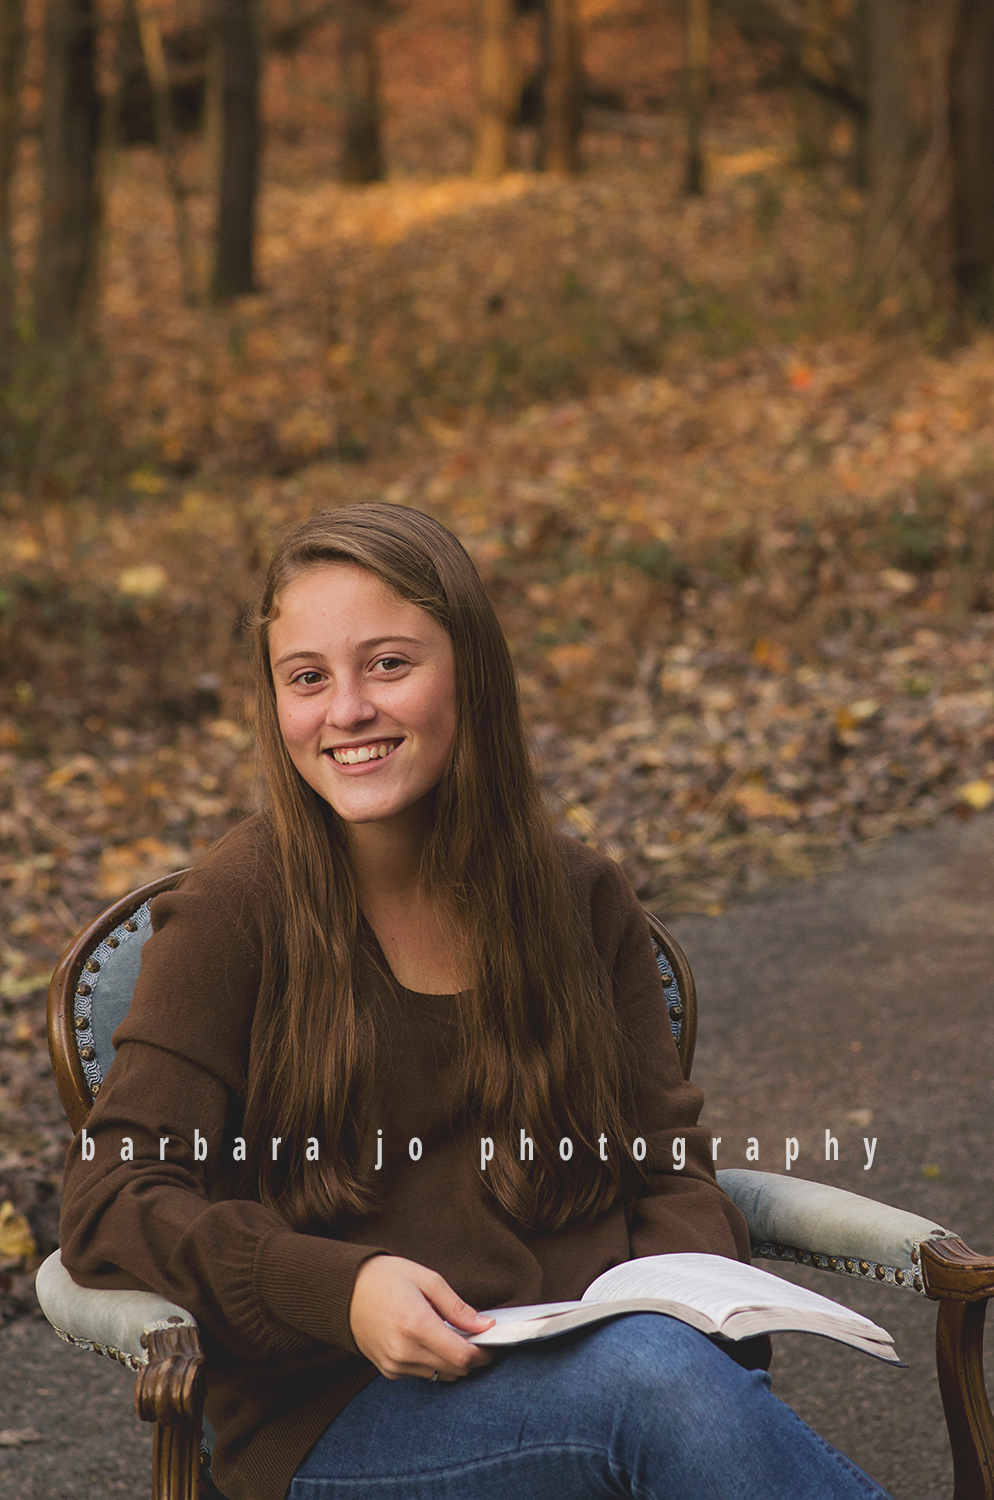 bjp-senior-pictures-portraits-class-of-2018-dover-oh-fall-autumn-woods-graduate-abby2.png